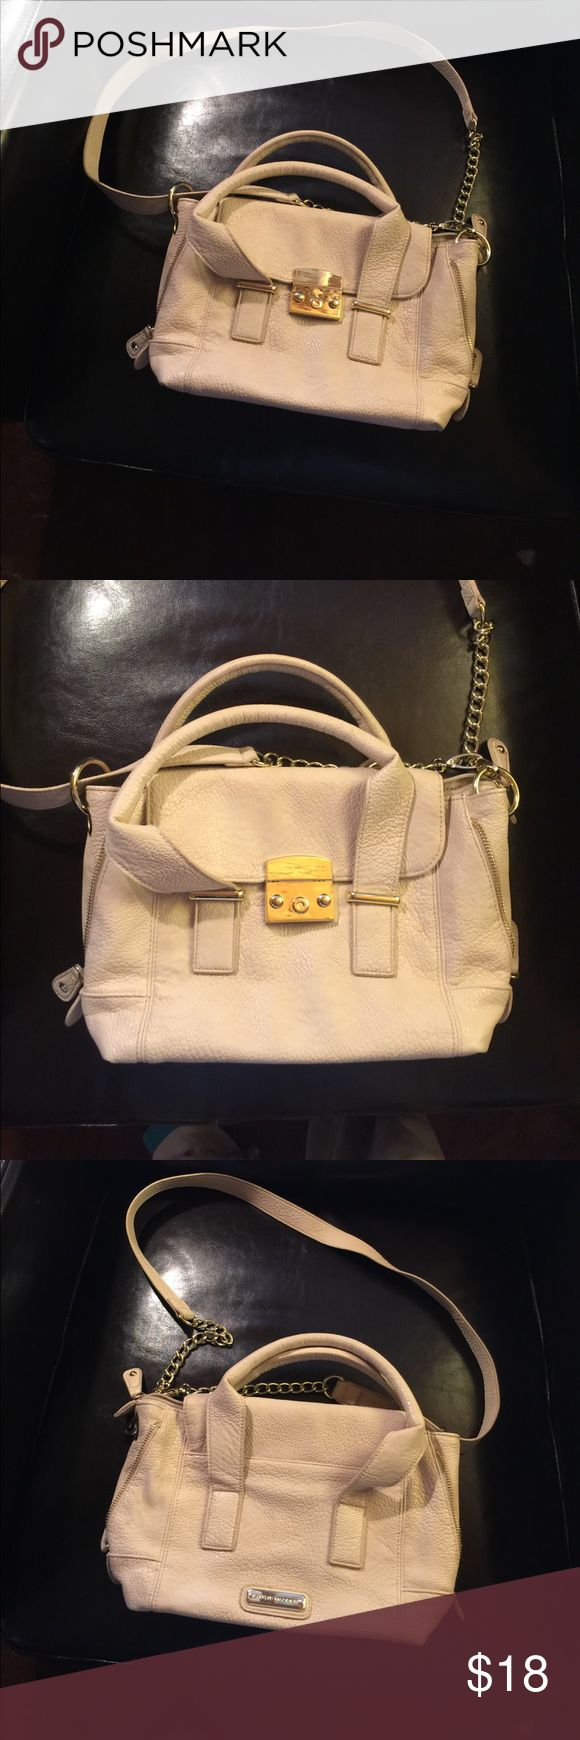 Cute crossbody bag from Steve Madden In a very good condition Steve Madden Bags Crossbody Bags